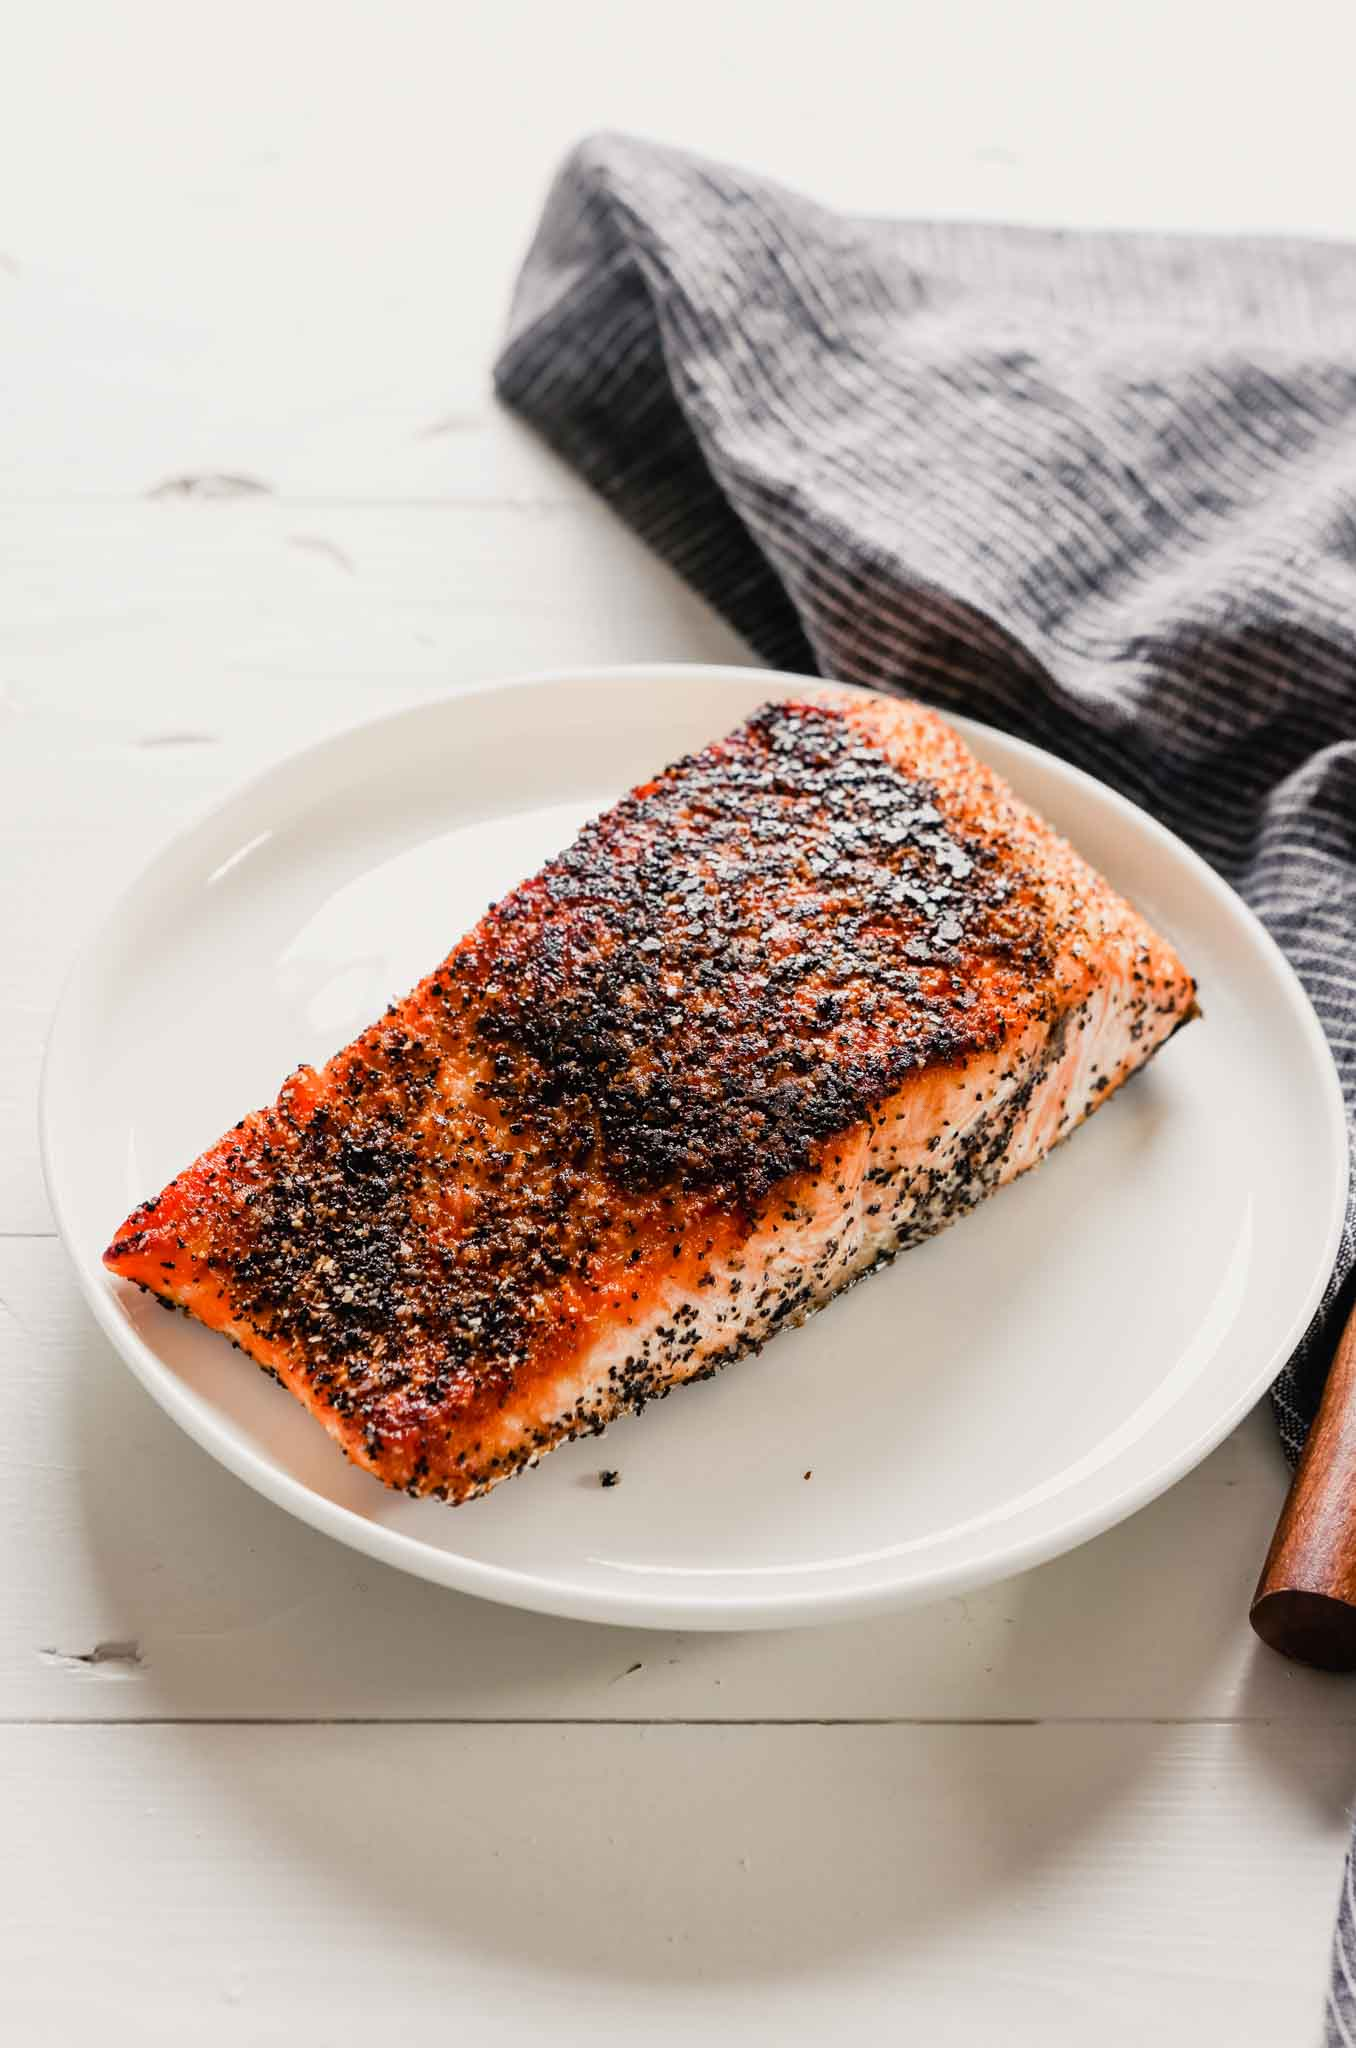 Photo of crispy pan seared salmon with skin set on a white plate with a blue napkin off to the side.